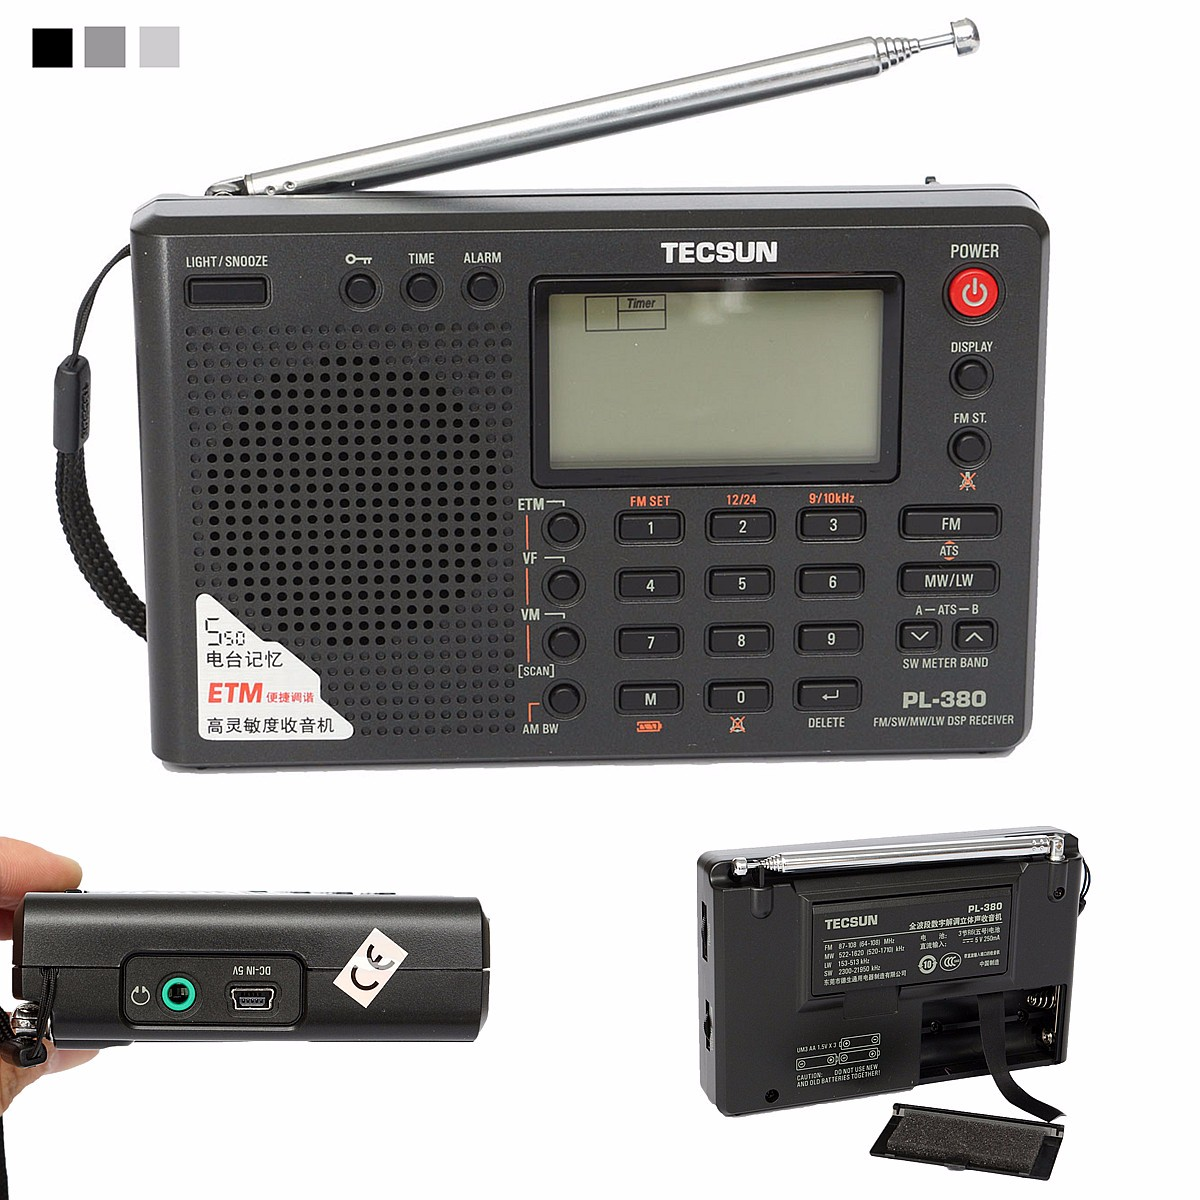 TECSUN PL-380 DSP PLL FM MW SW LW Digital Stereo Radio World-Band Receiver New 3 Colors 7 Tuning Mode Selectable 135x86x29mm tecsun pl 600 digital tuning full band fm mw sw sbb air pll synthesized stereo radio receiver 4xaa